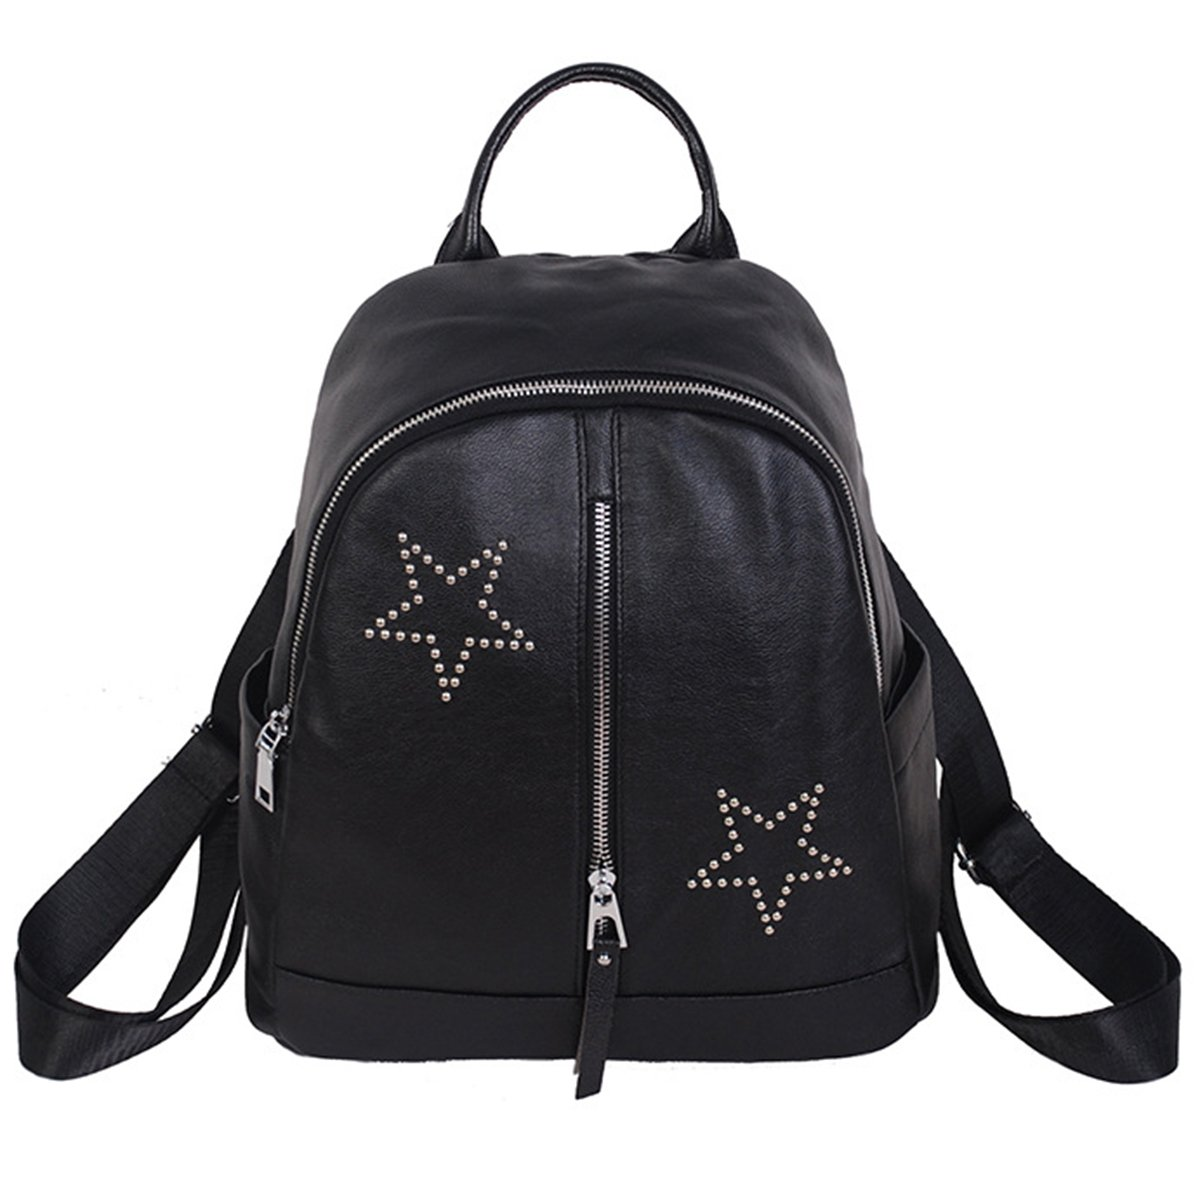 Backpack for Women - Bageek Black Backpack PU Leather Backpack Casual Backpack